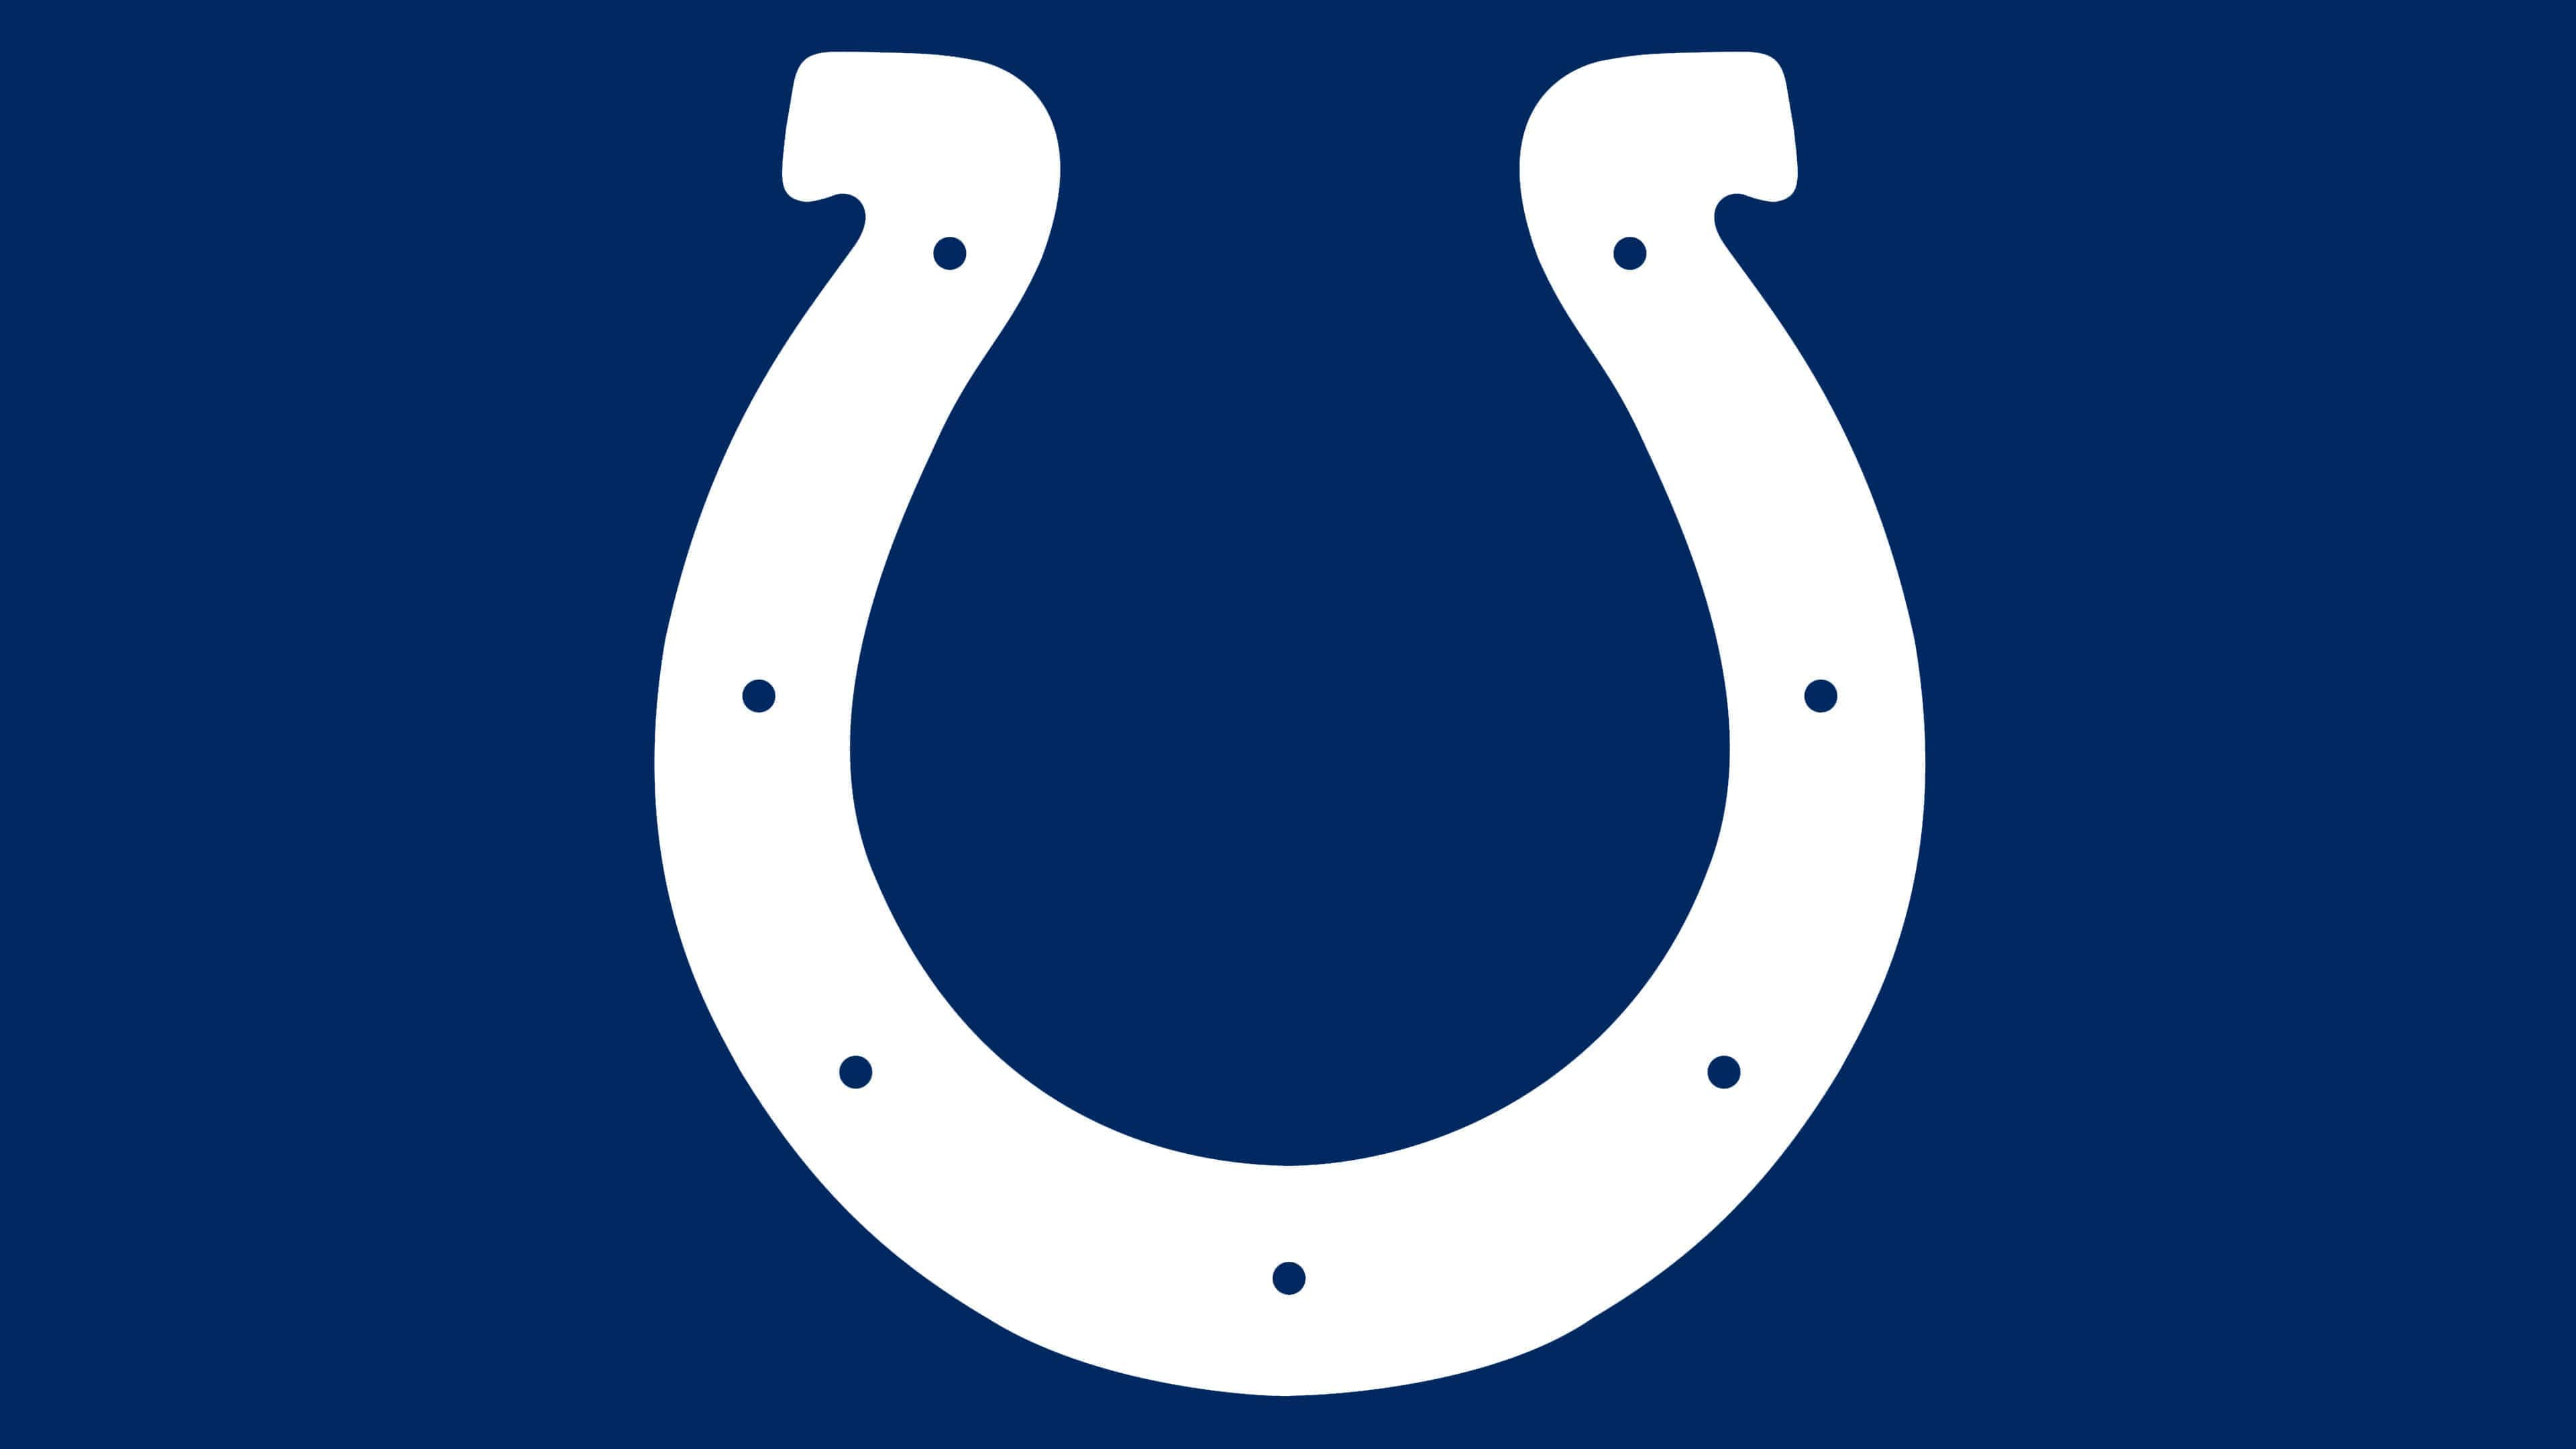 Indianapolis Colts Logo The Most Famous Brands And Company Logos In The World